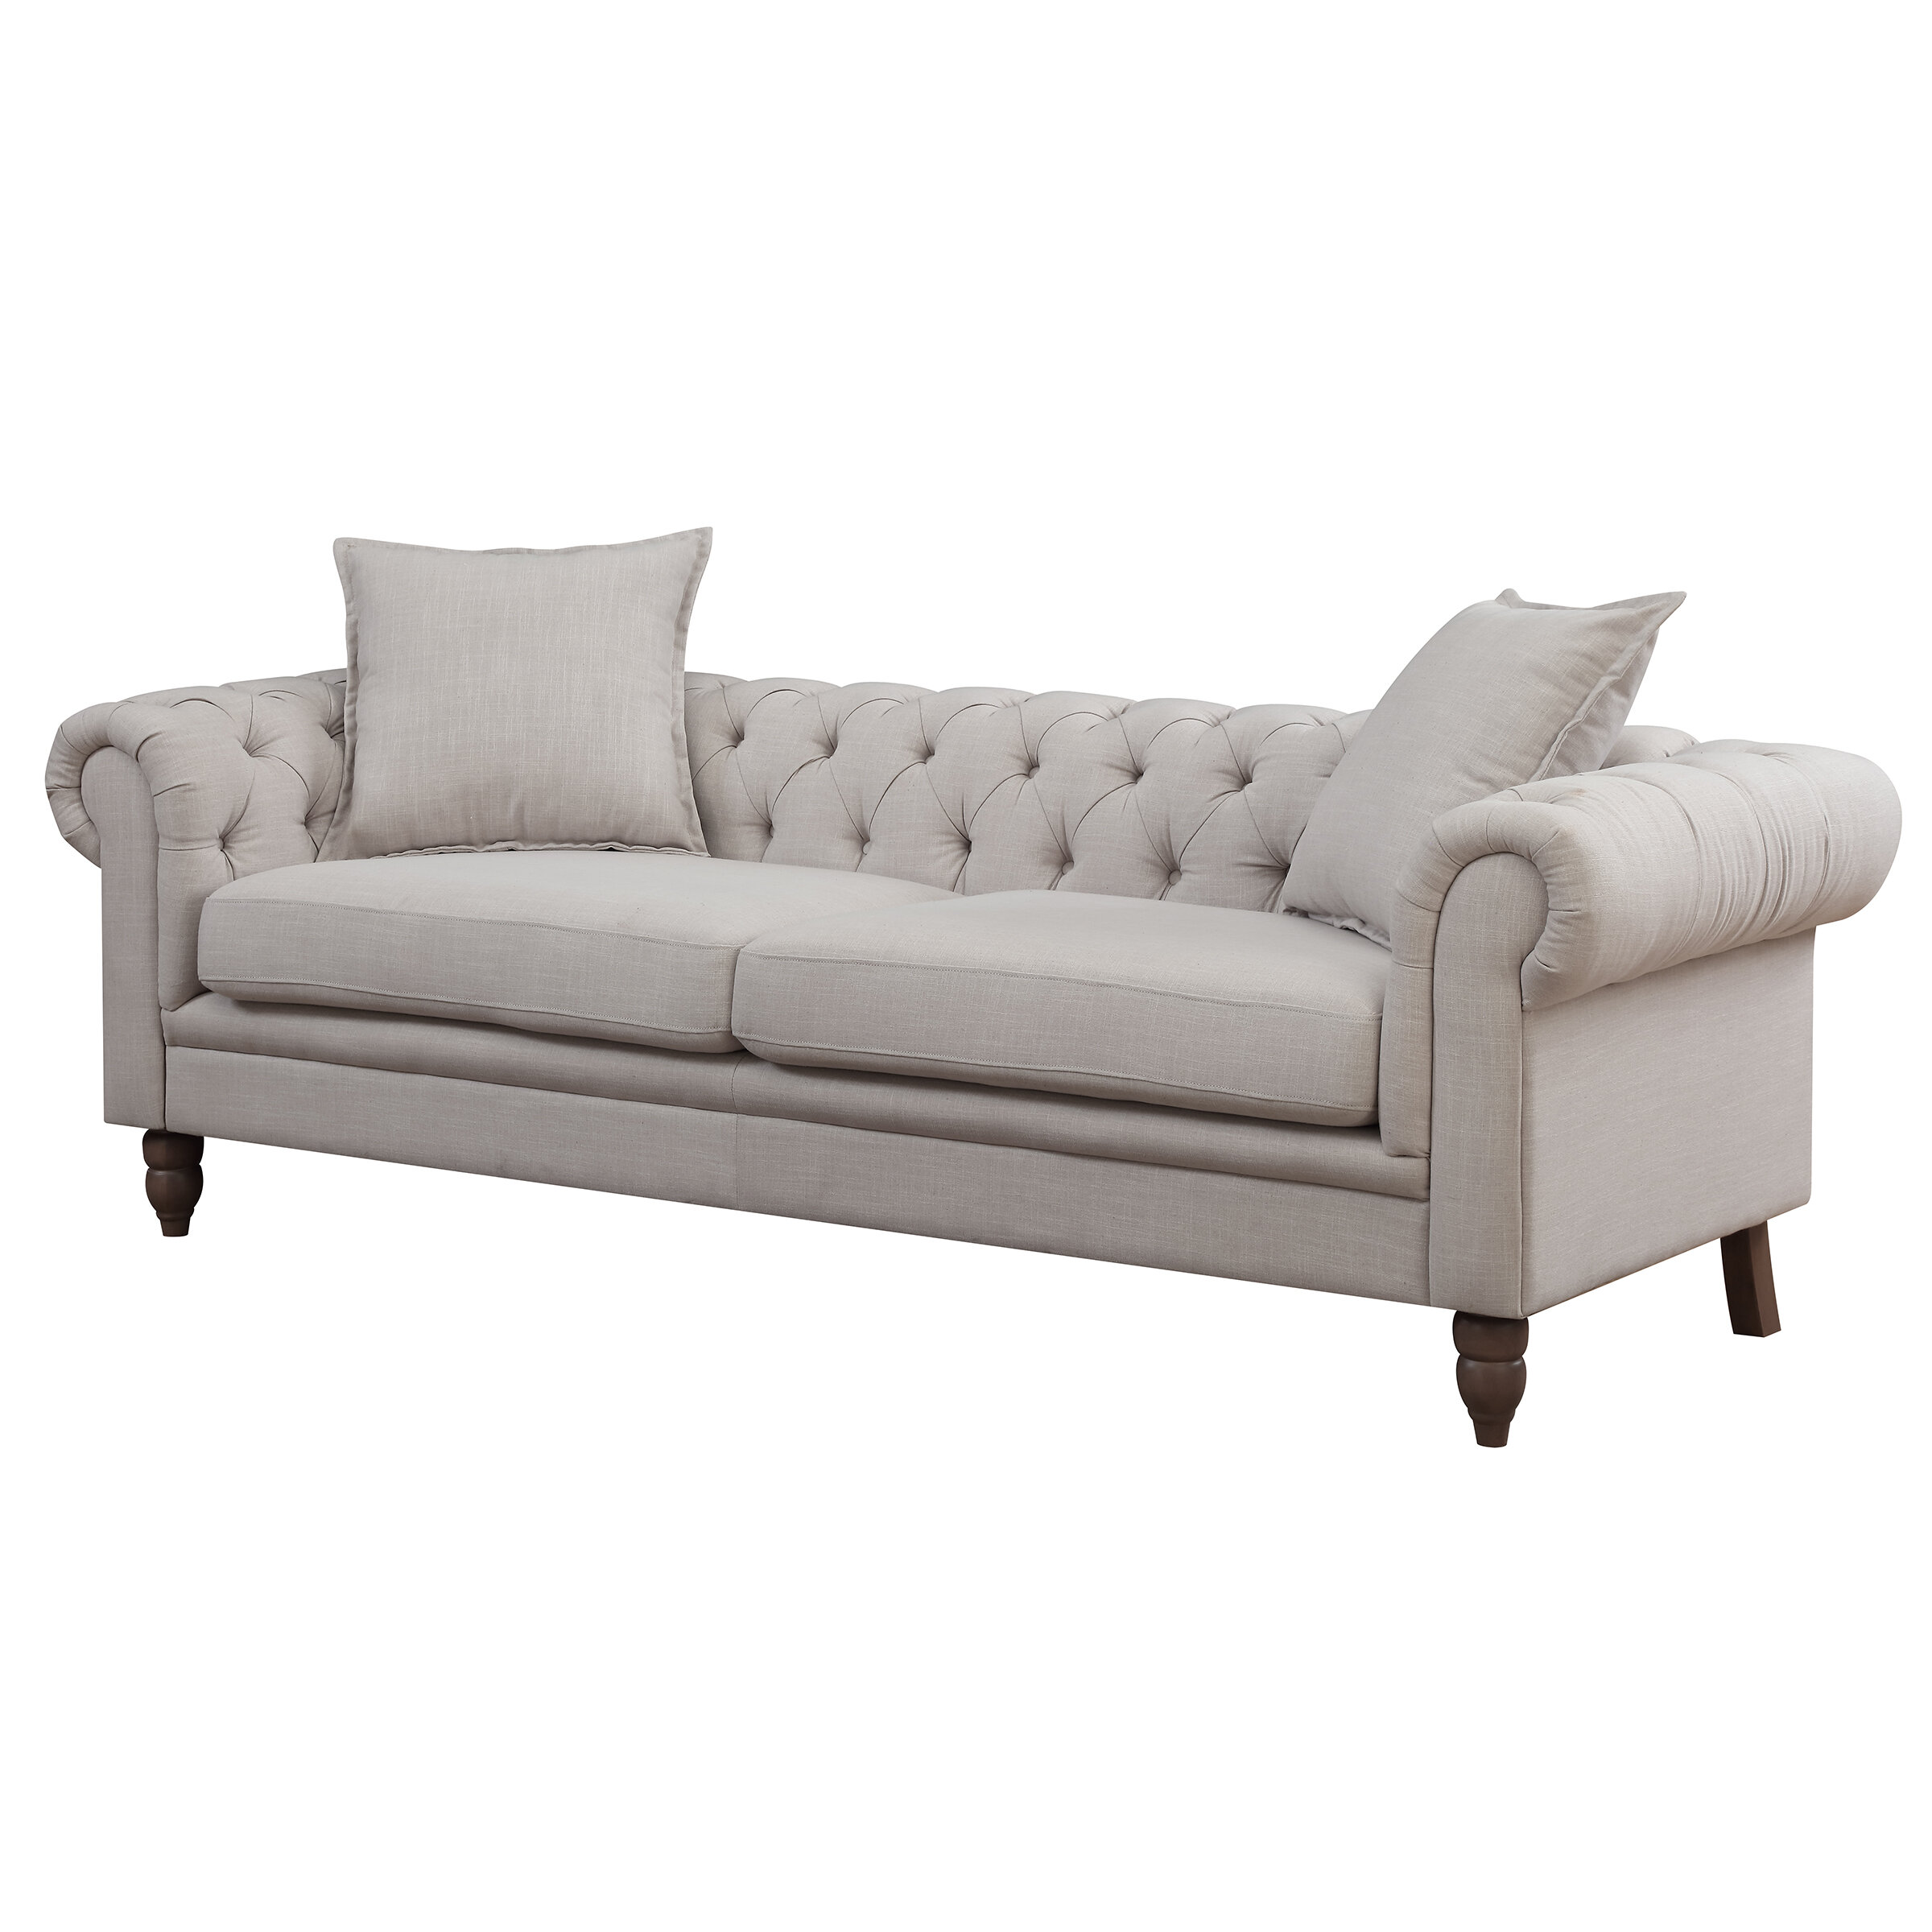 AC Pacific Juliet Chesterfield Sofa U0026 Reviews | Wayfair